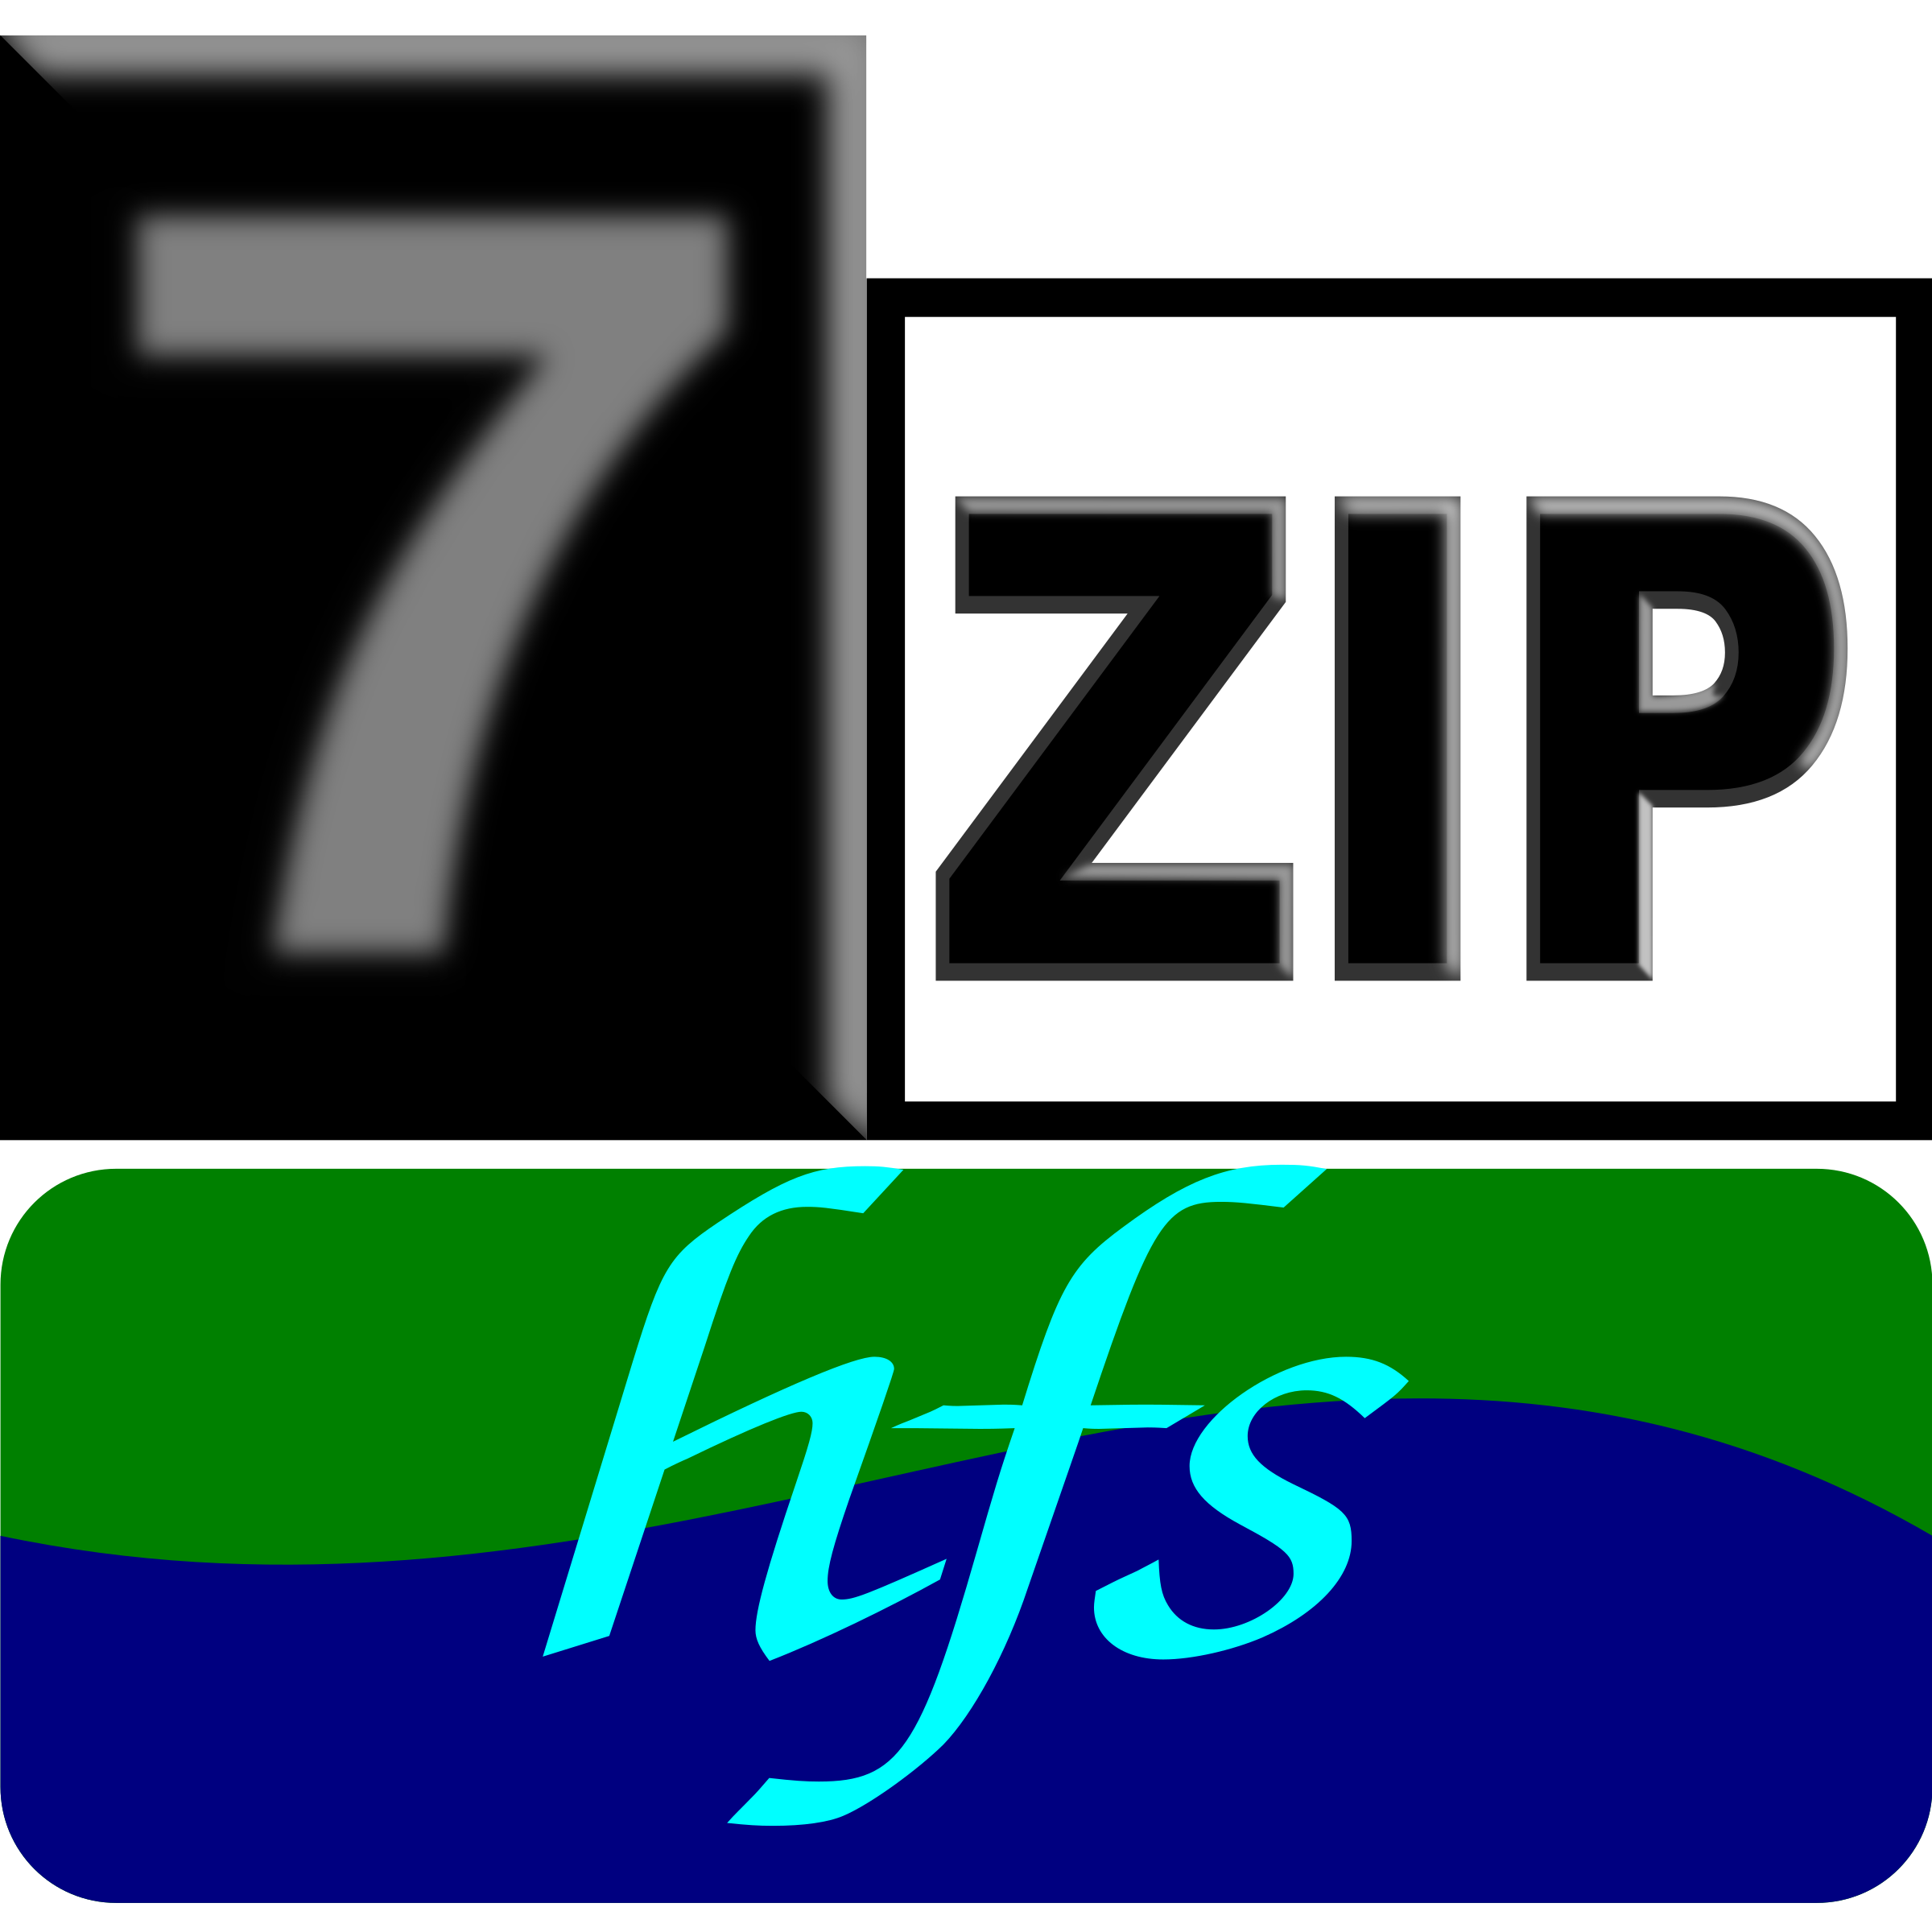 7zipClassic-hfs by kg